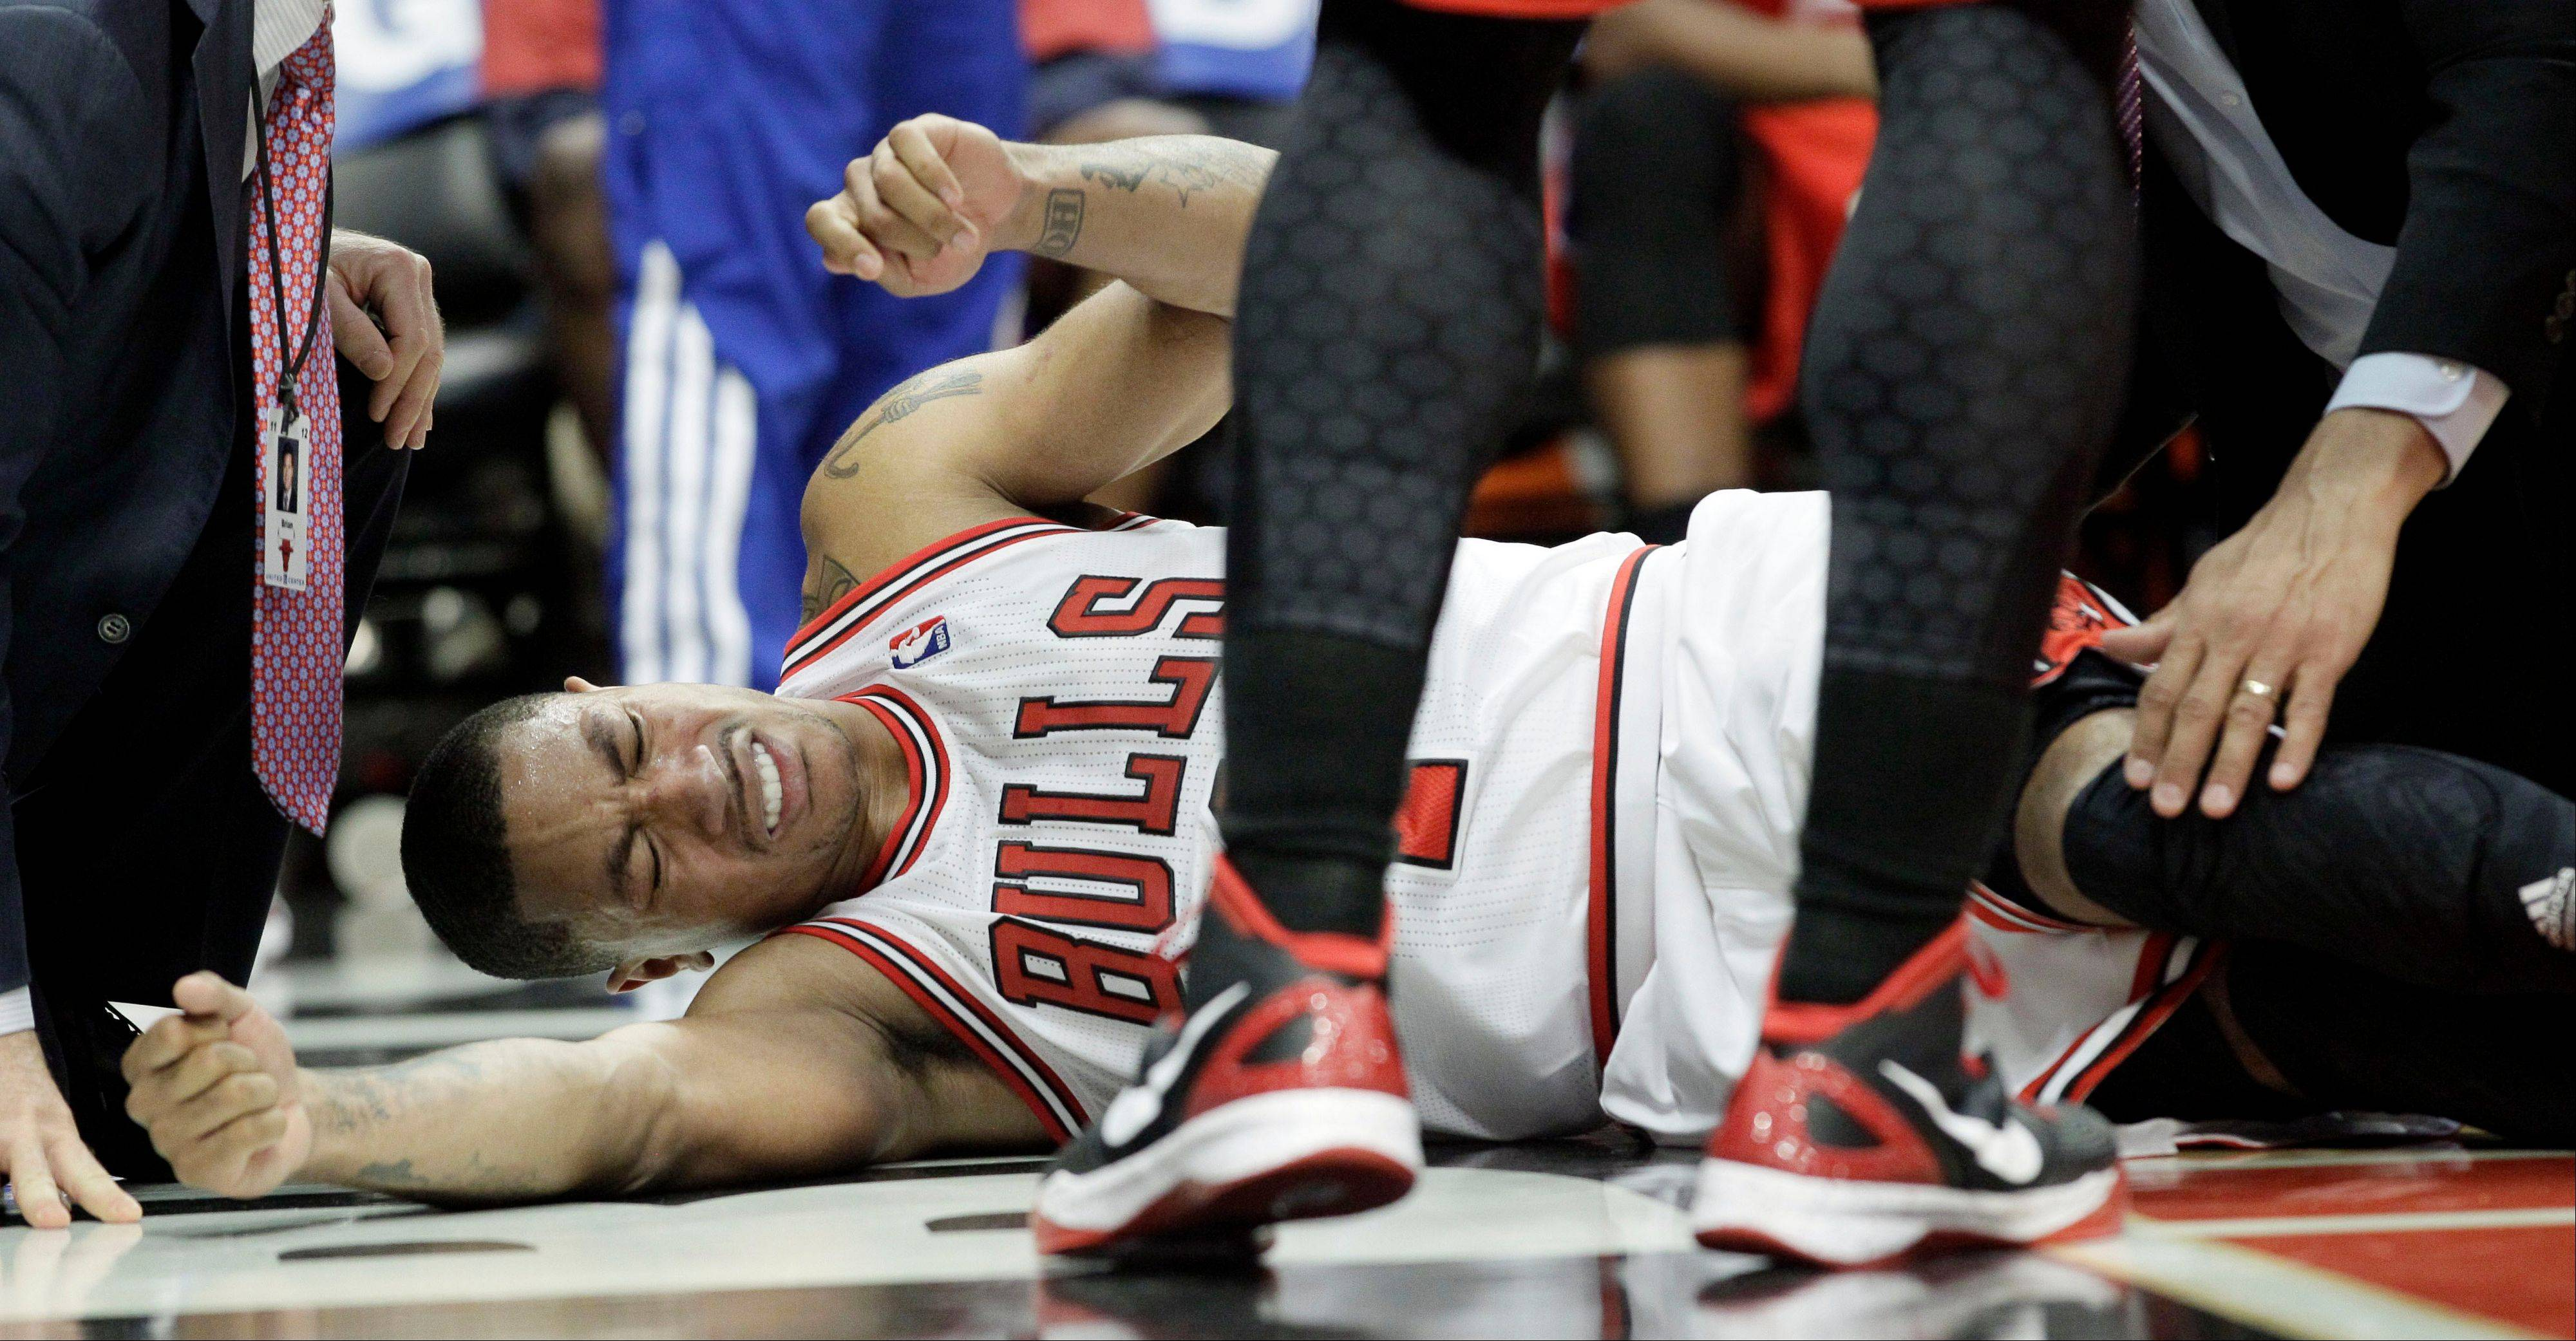 Chicago Bulls guard Derrick Rose reacts after an injury Saturday during the fourth quarter of Game 1 in the first round of the NBA basketball playoffs against the Philadelphia 76ers in Chicago. The Bulls won 103-91.